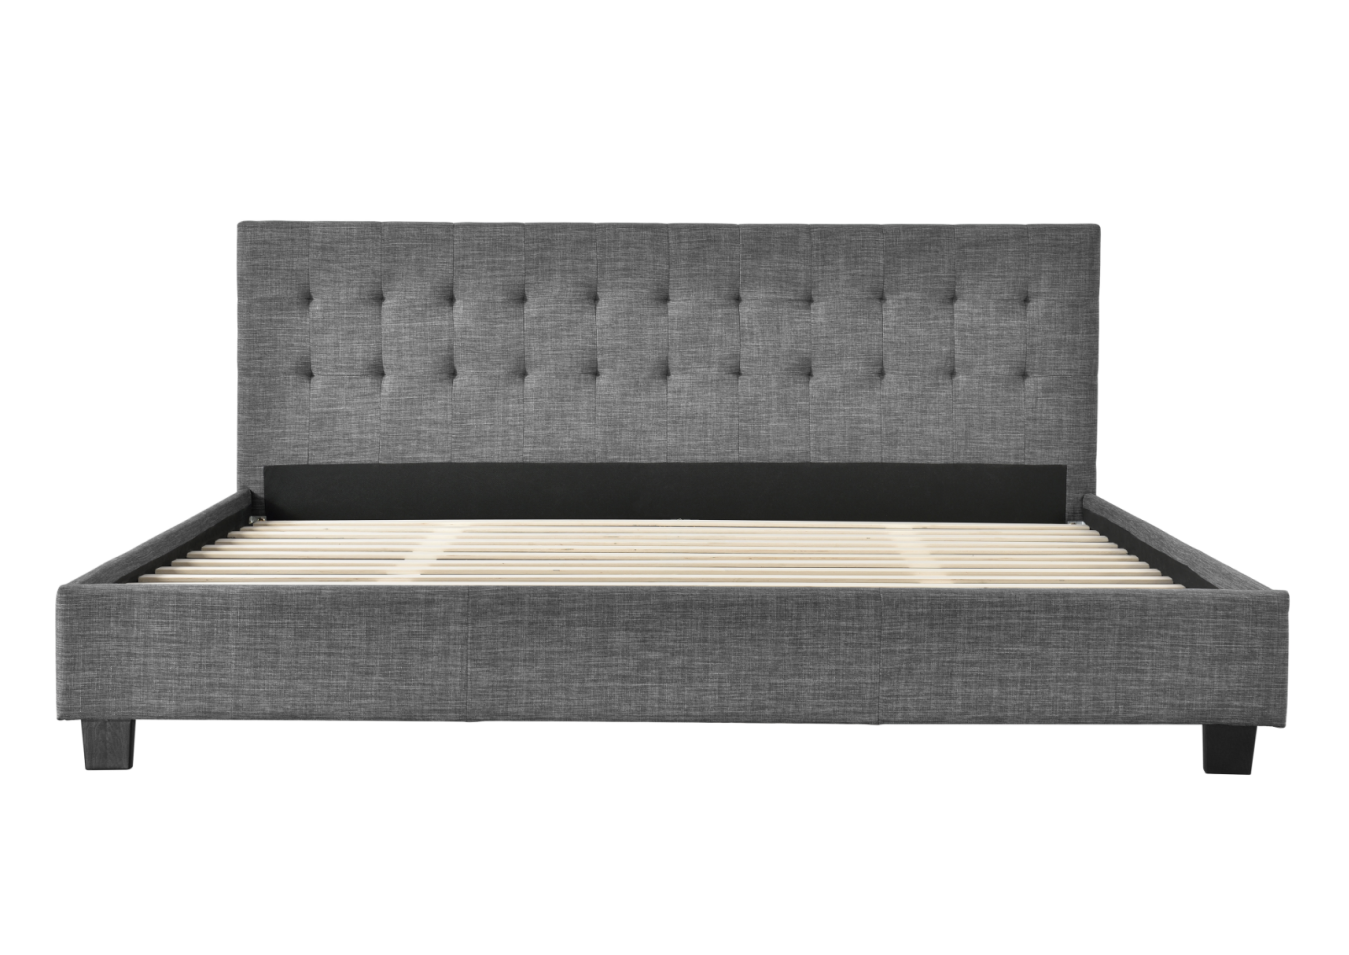 Bed Frame (Super King, King, Queen, Double) - Grayson Series